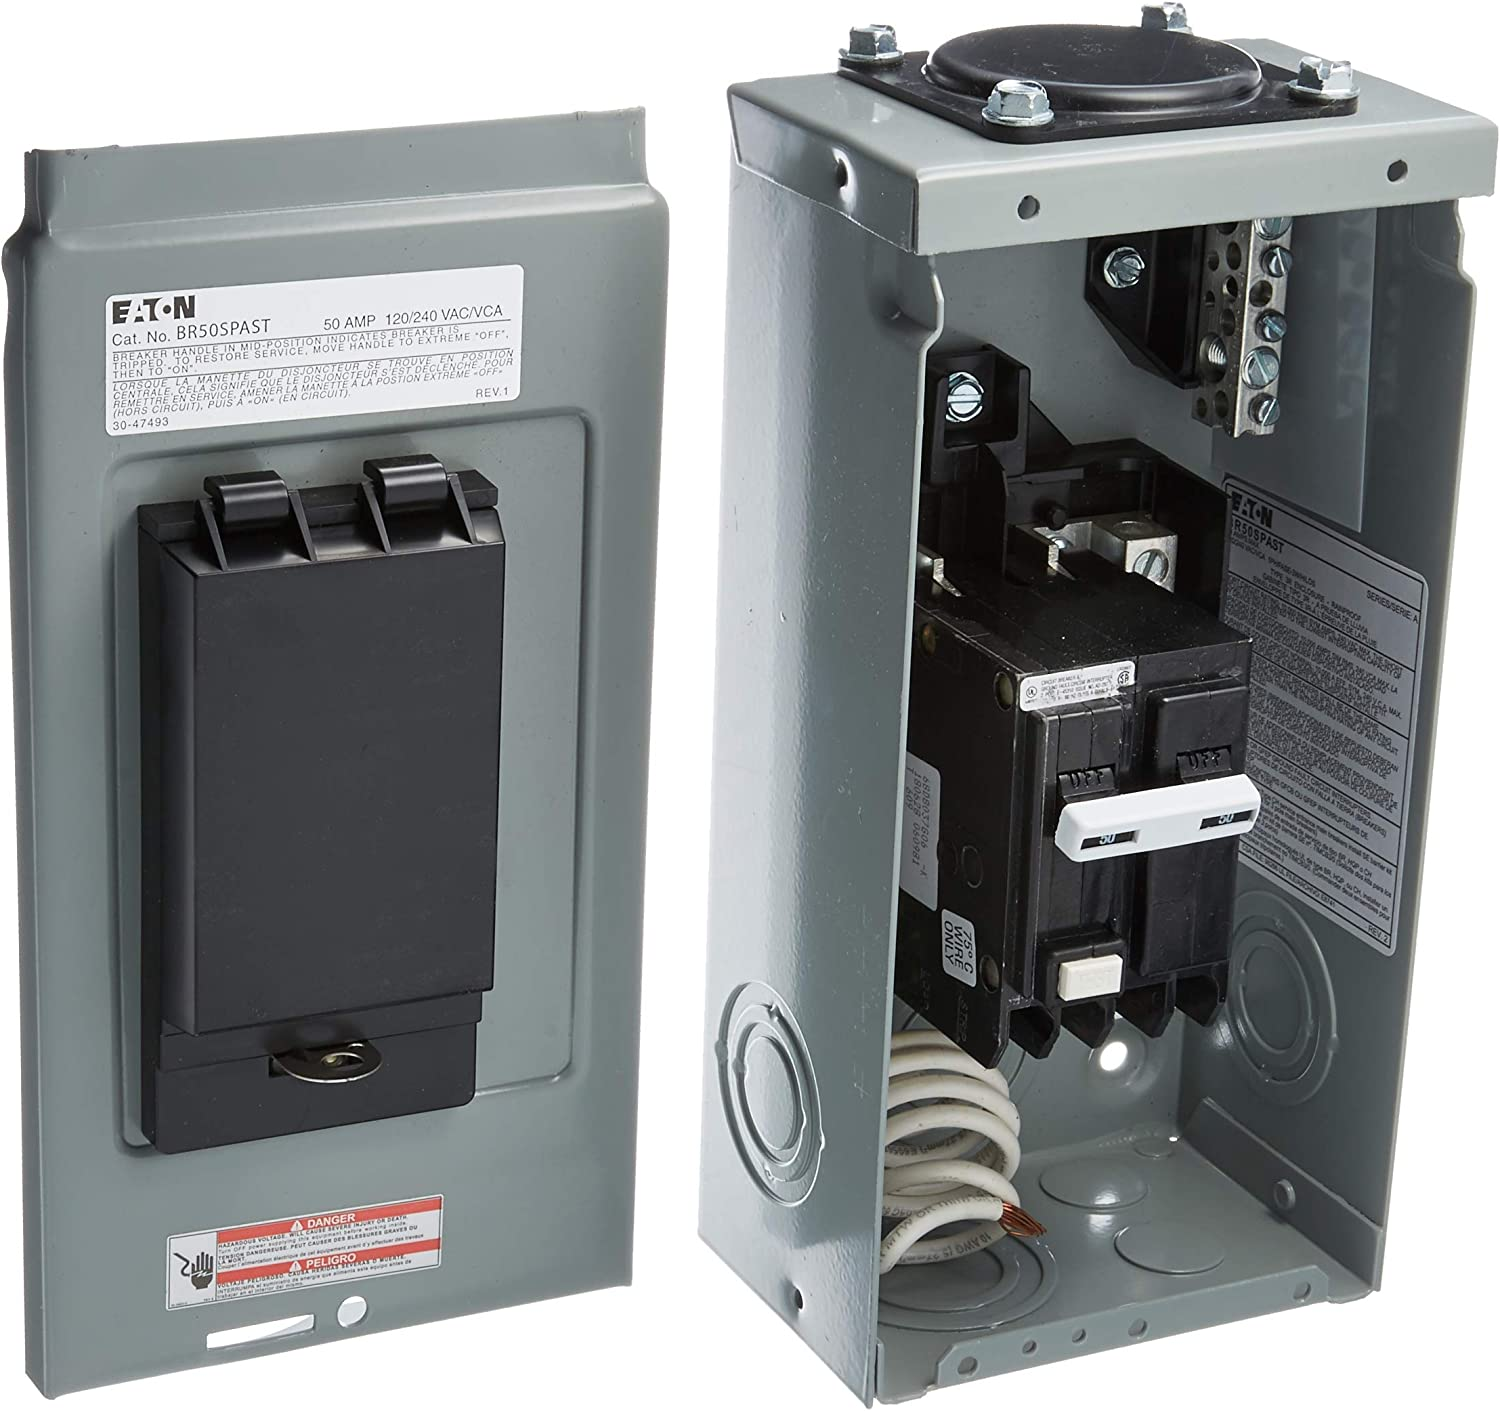 Spa Gfci 50 Amp Receptacle Wiring